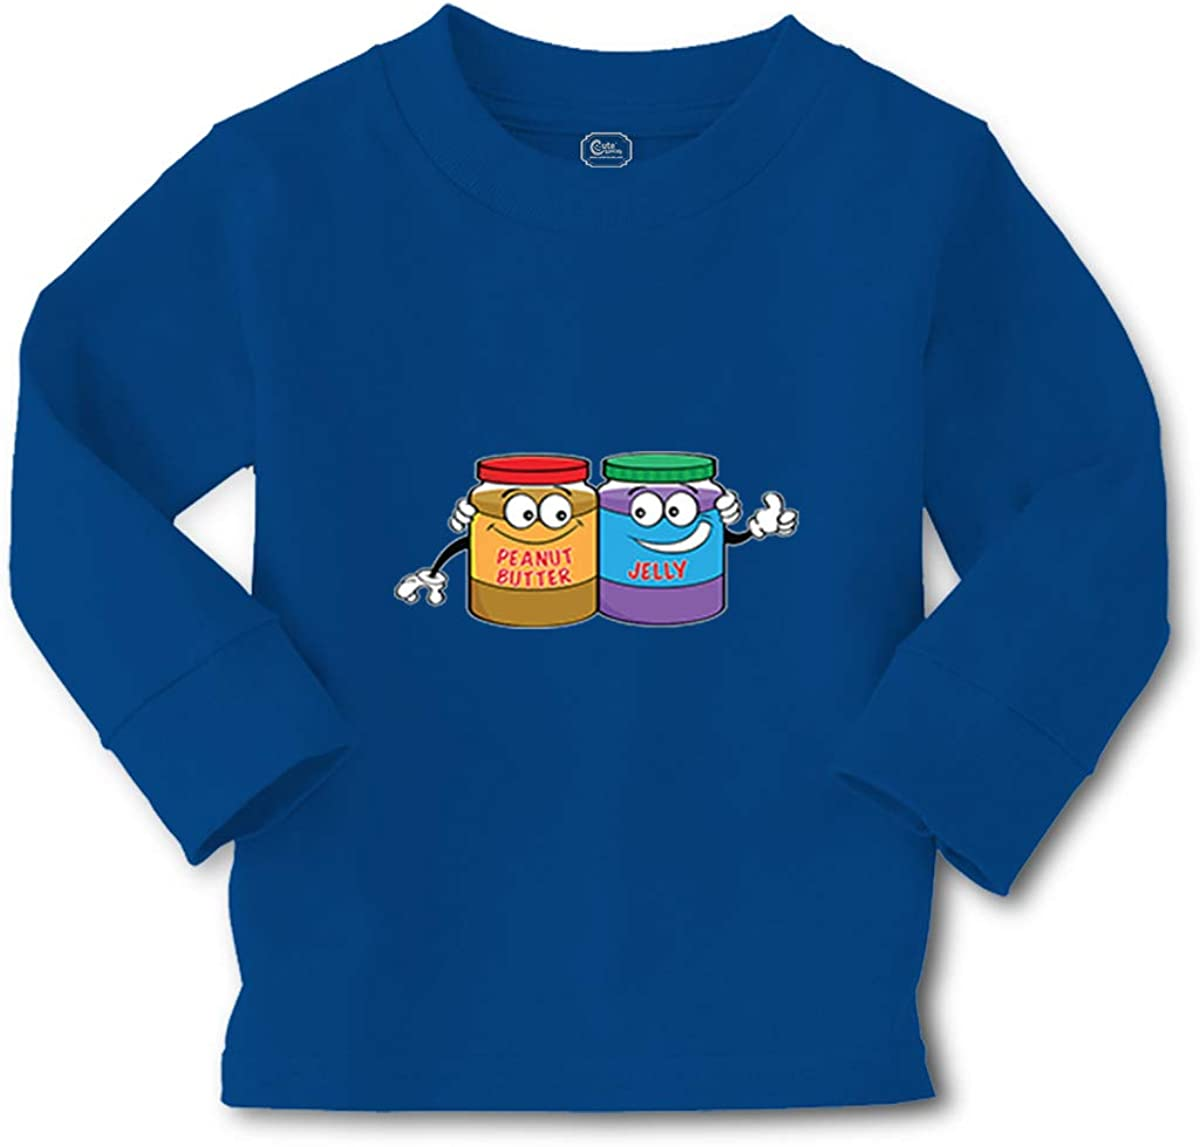 Kids Long Sleeve T Shirt Peanut Butter - Jelly Cotton Boy & Girl Clothes Funny Graphic Tee Royal Blue Design Only 5 6T